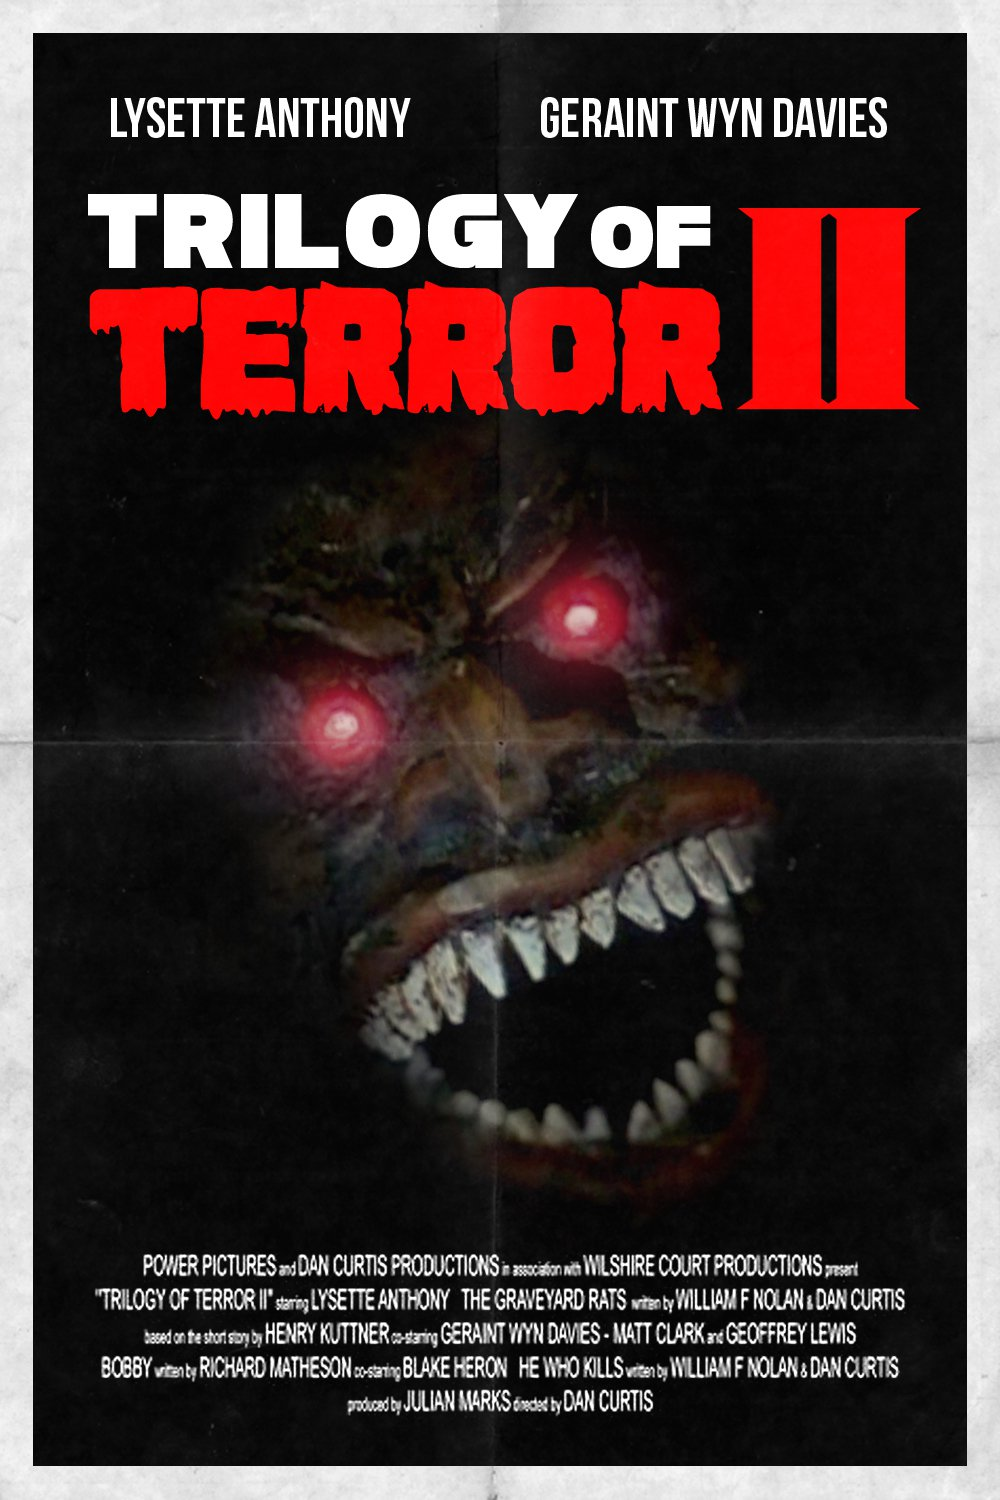 Trilogy of Terror II (1996)